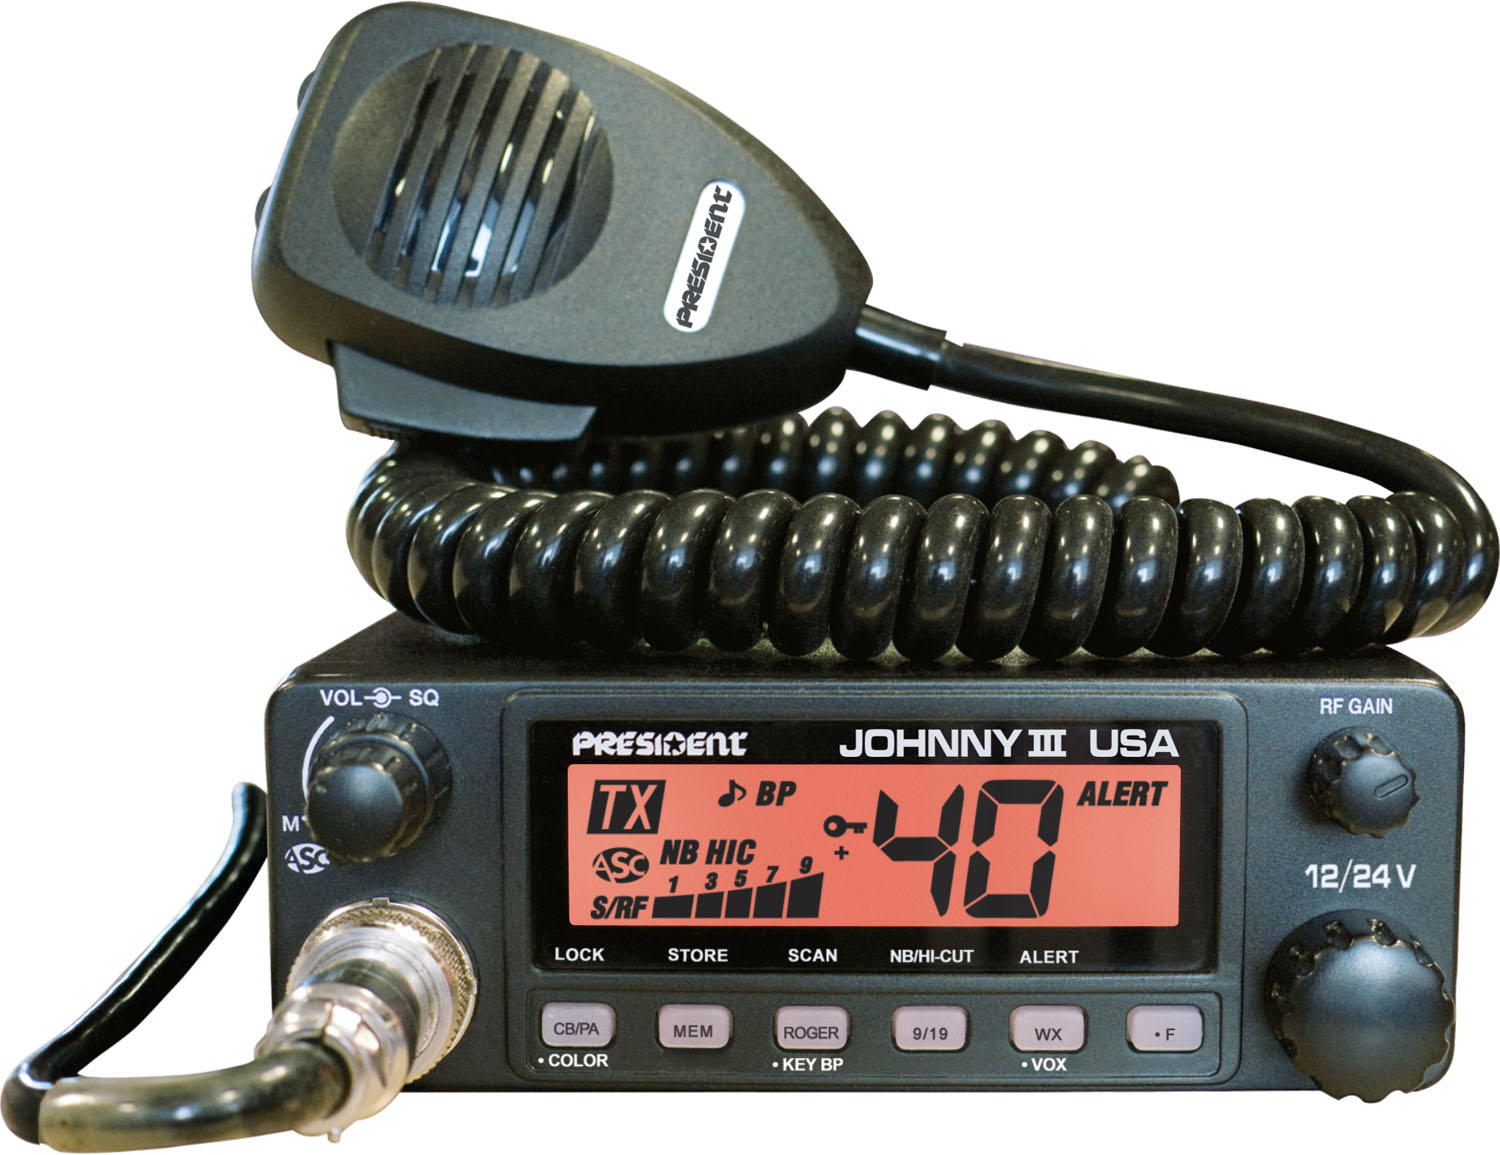 JOHNNY III - President  CB Radio